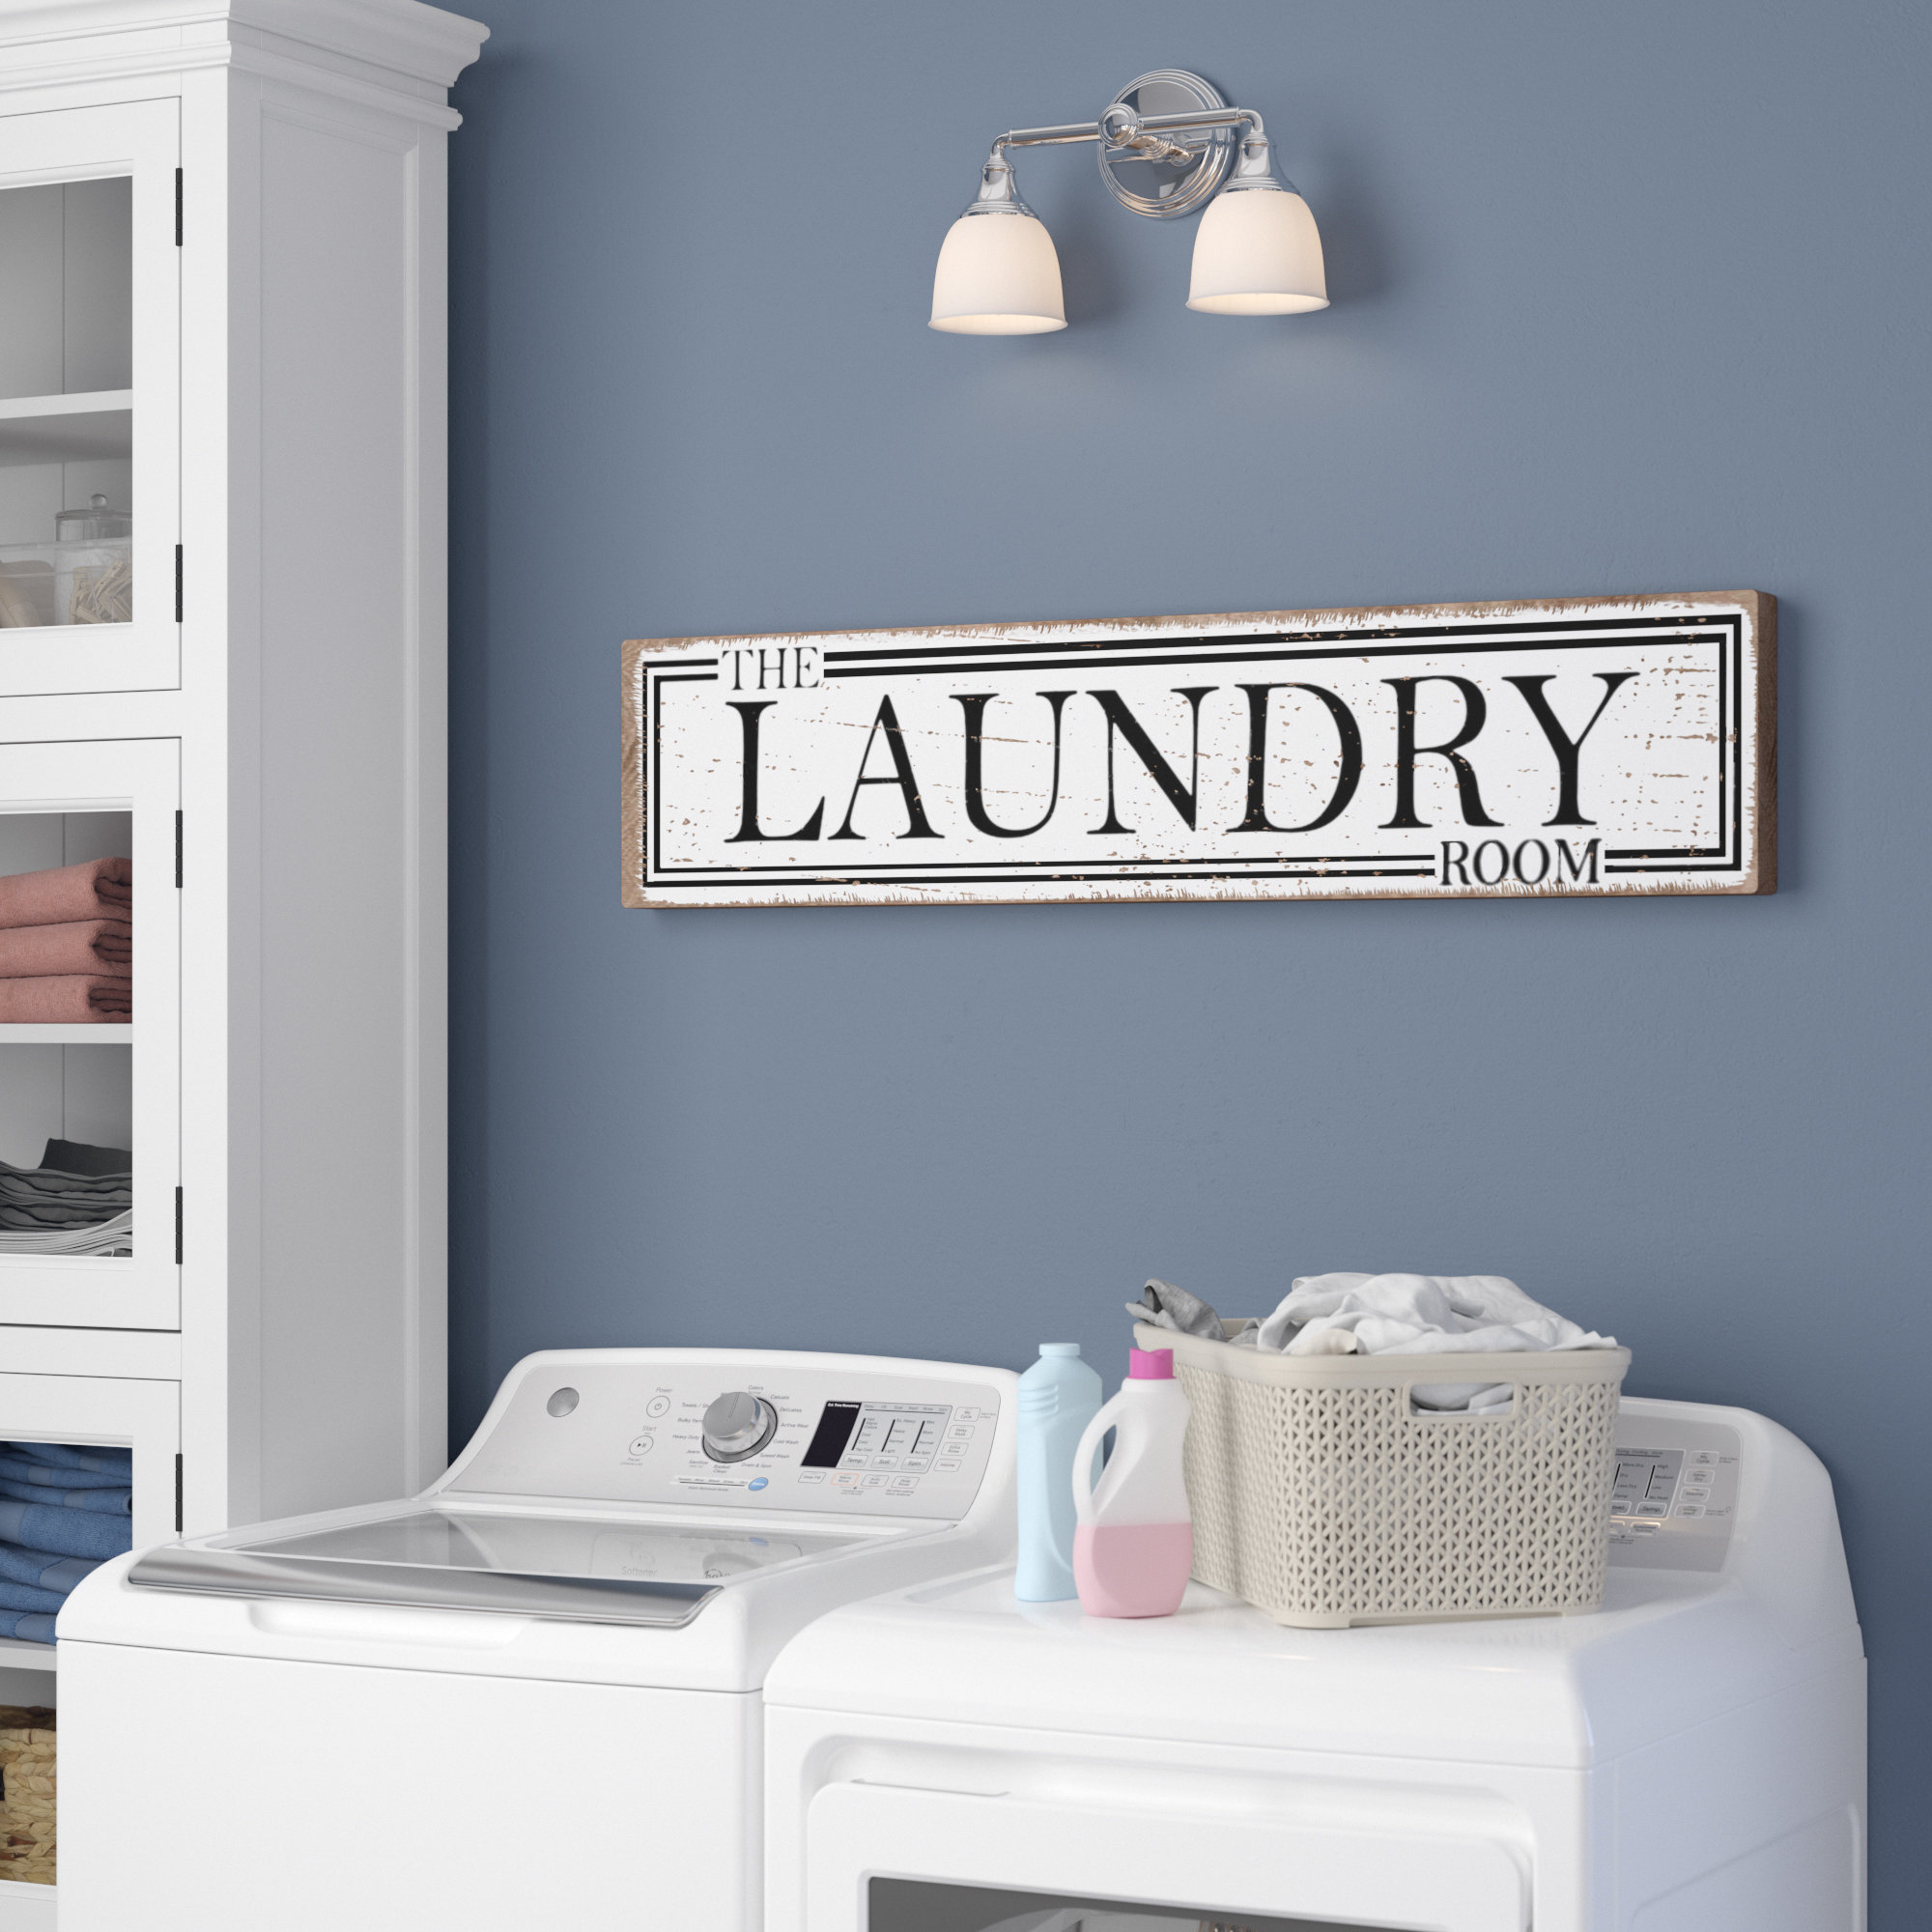 Most Current Wall Decor By Charlton Home Pertaining To Charlton Home The Laundry Room Wall Décor & Reviews (View 16 of 20)